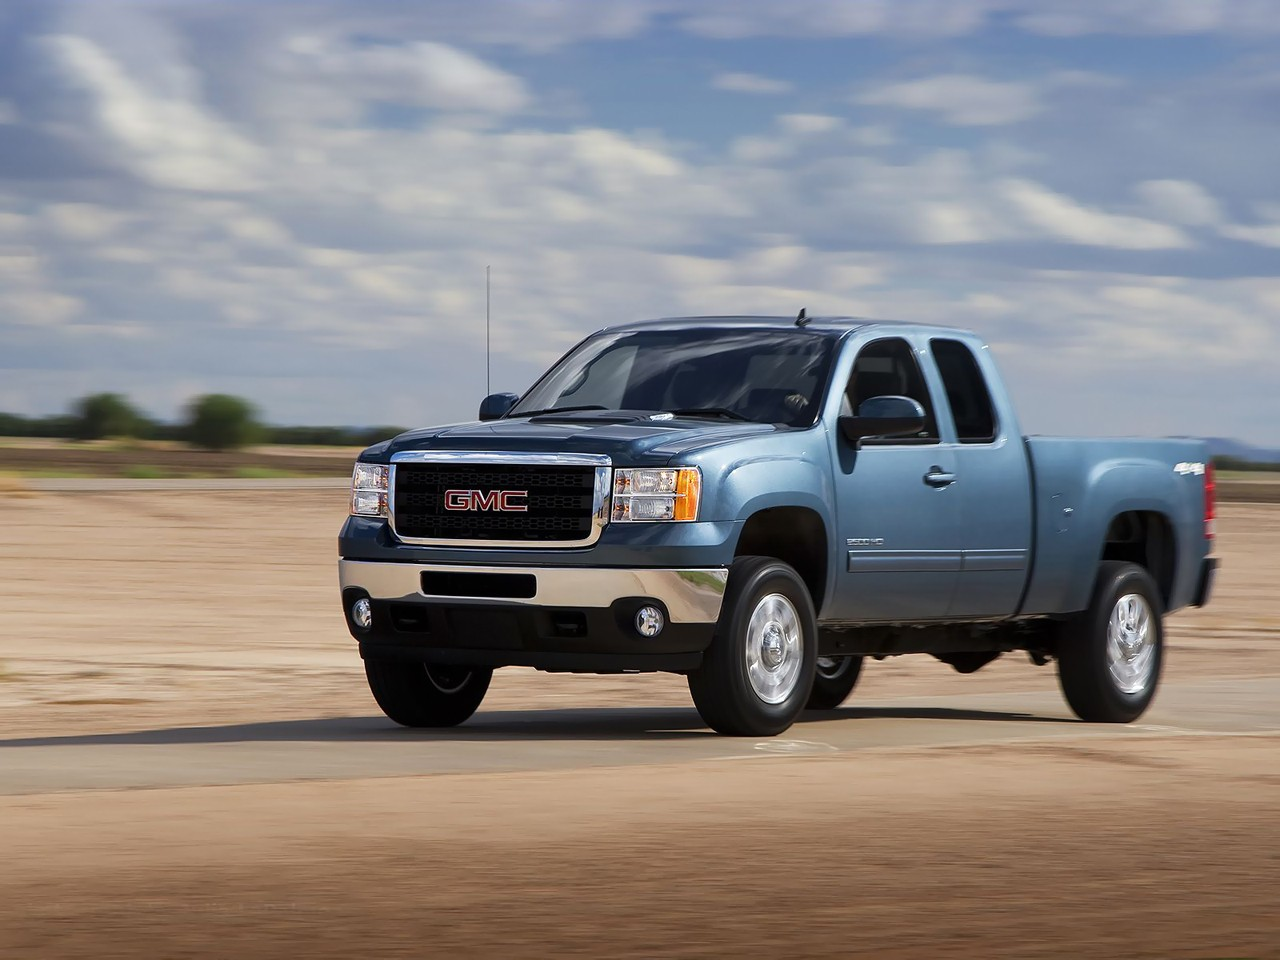 gmc sierra 2500hd extended cab specs 2008 2009 2010 2011 2012 2013 autoevolution. Black Bedroom Furniture Sets. Home Design Ideas